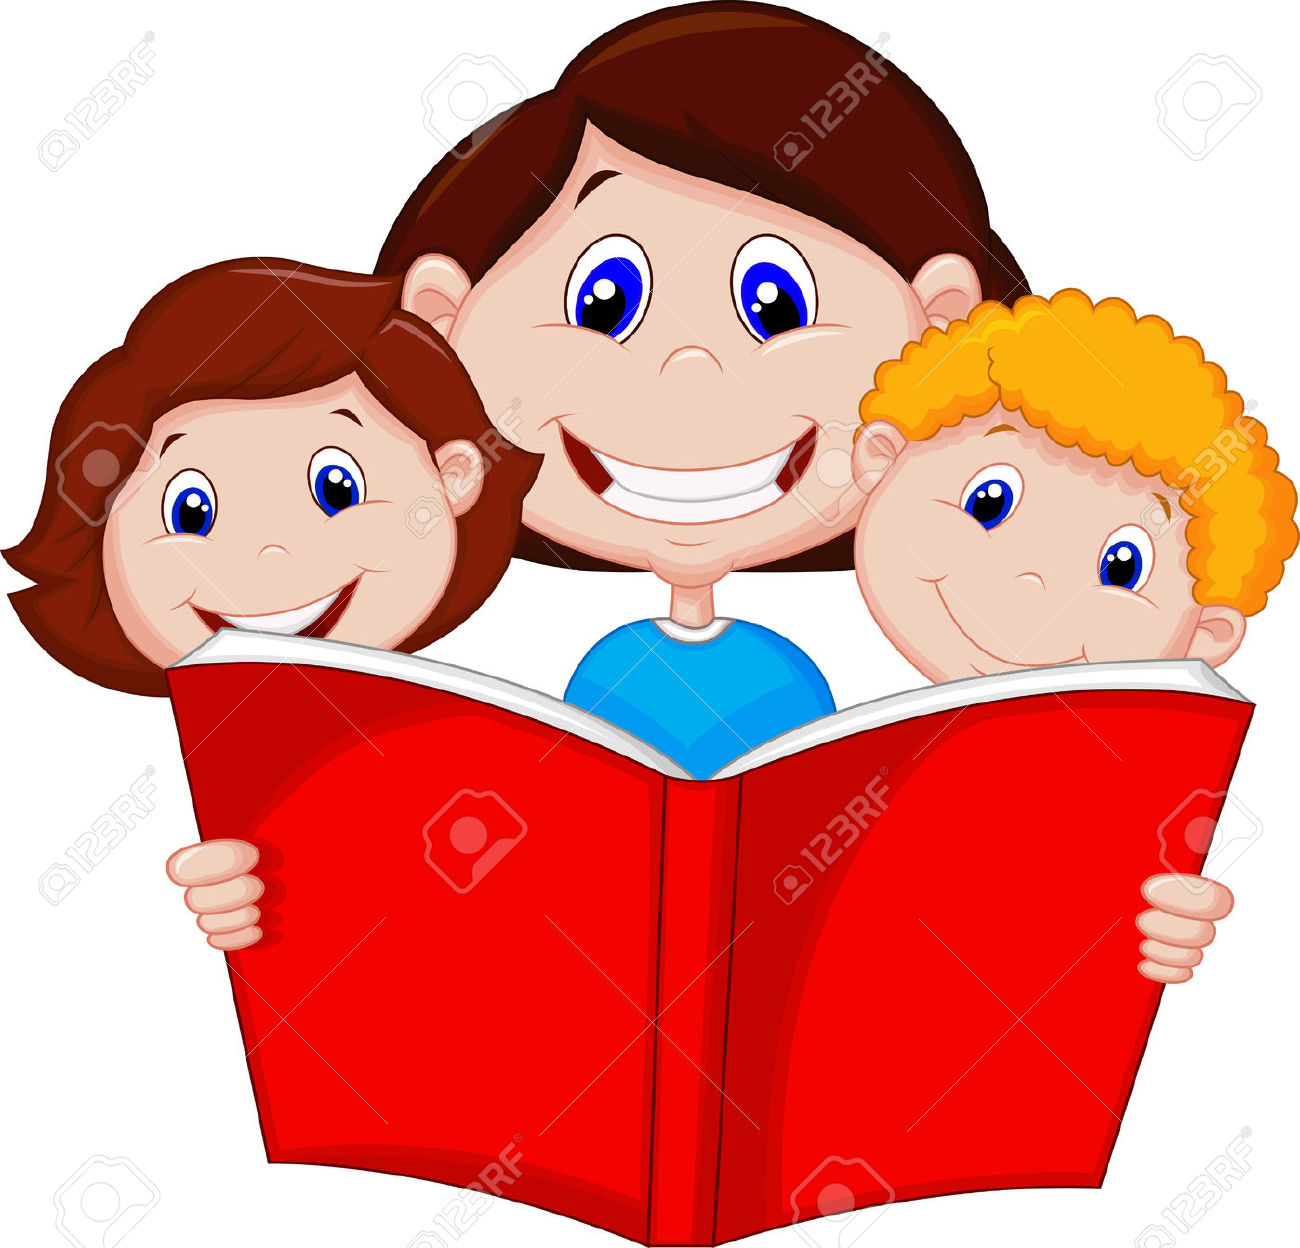 Cartoon Mother Reading Book To Her Children Royalty Free Cliparts.